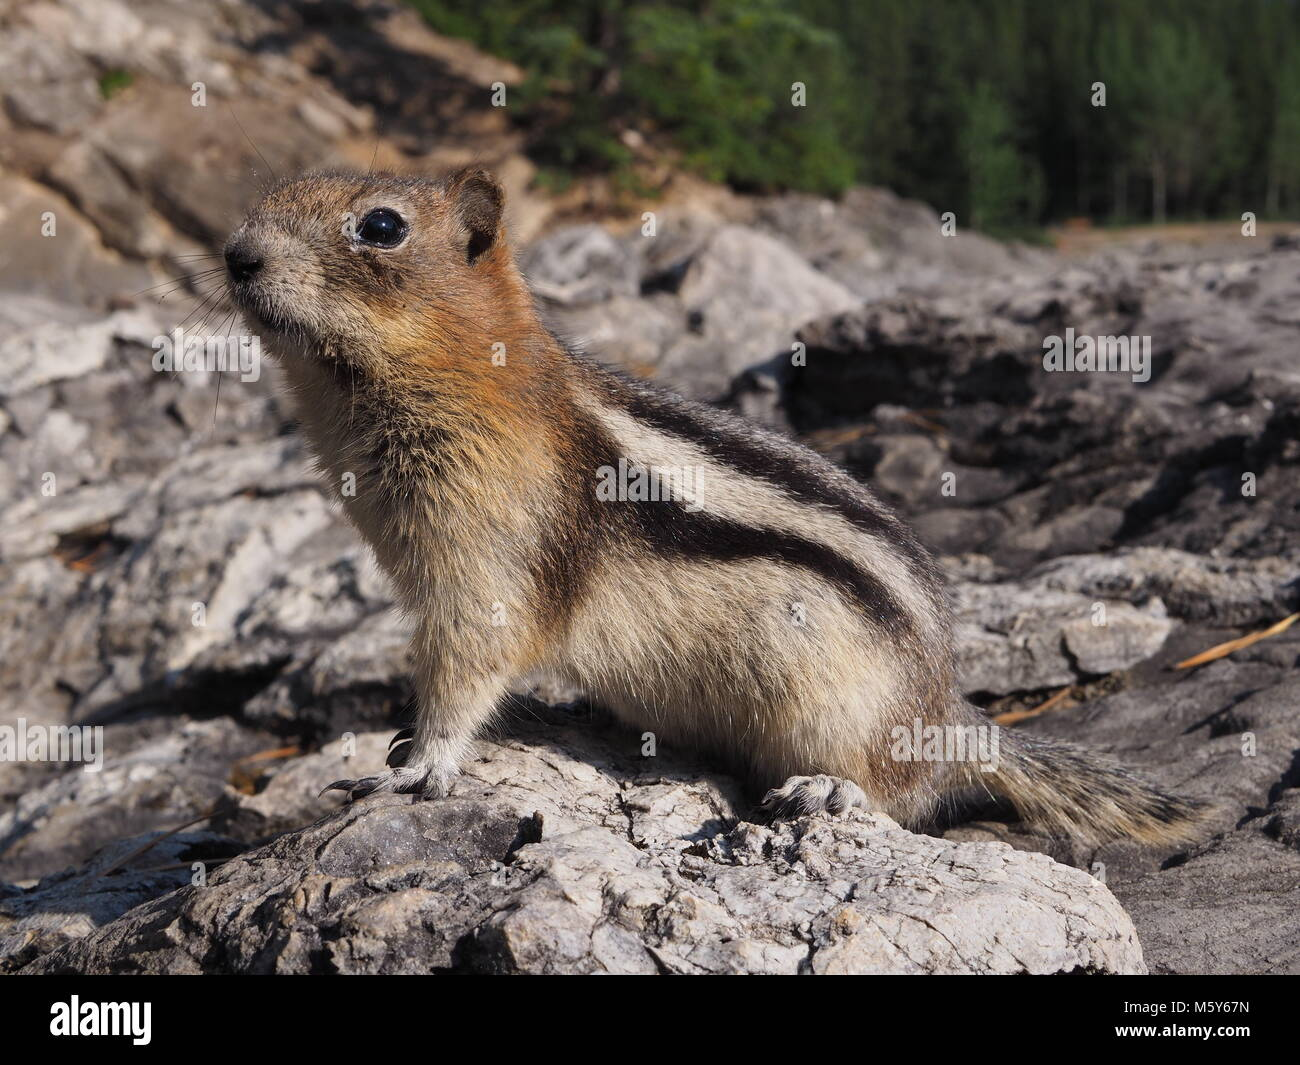 Golden-mantled ground squirrel, Canadian rockies - Stock Image